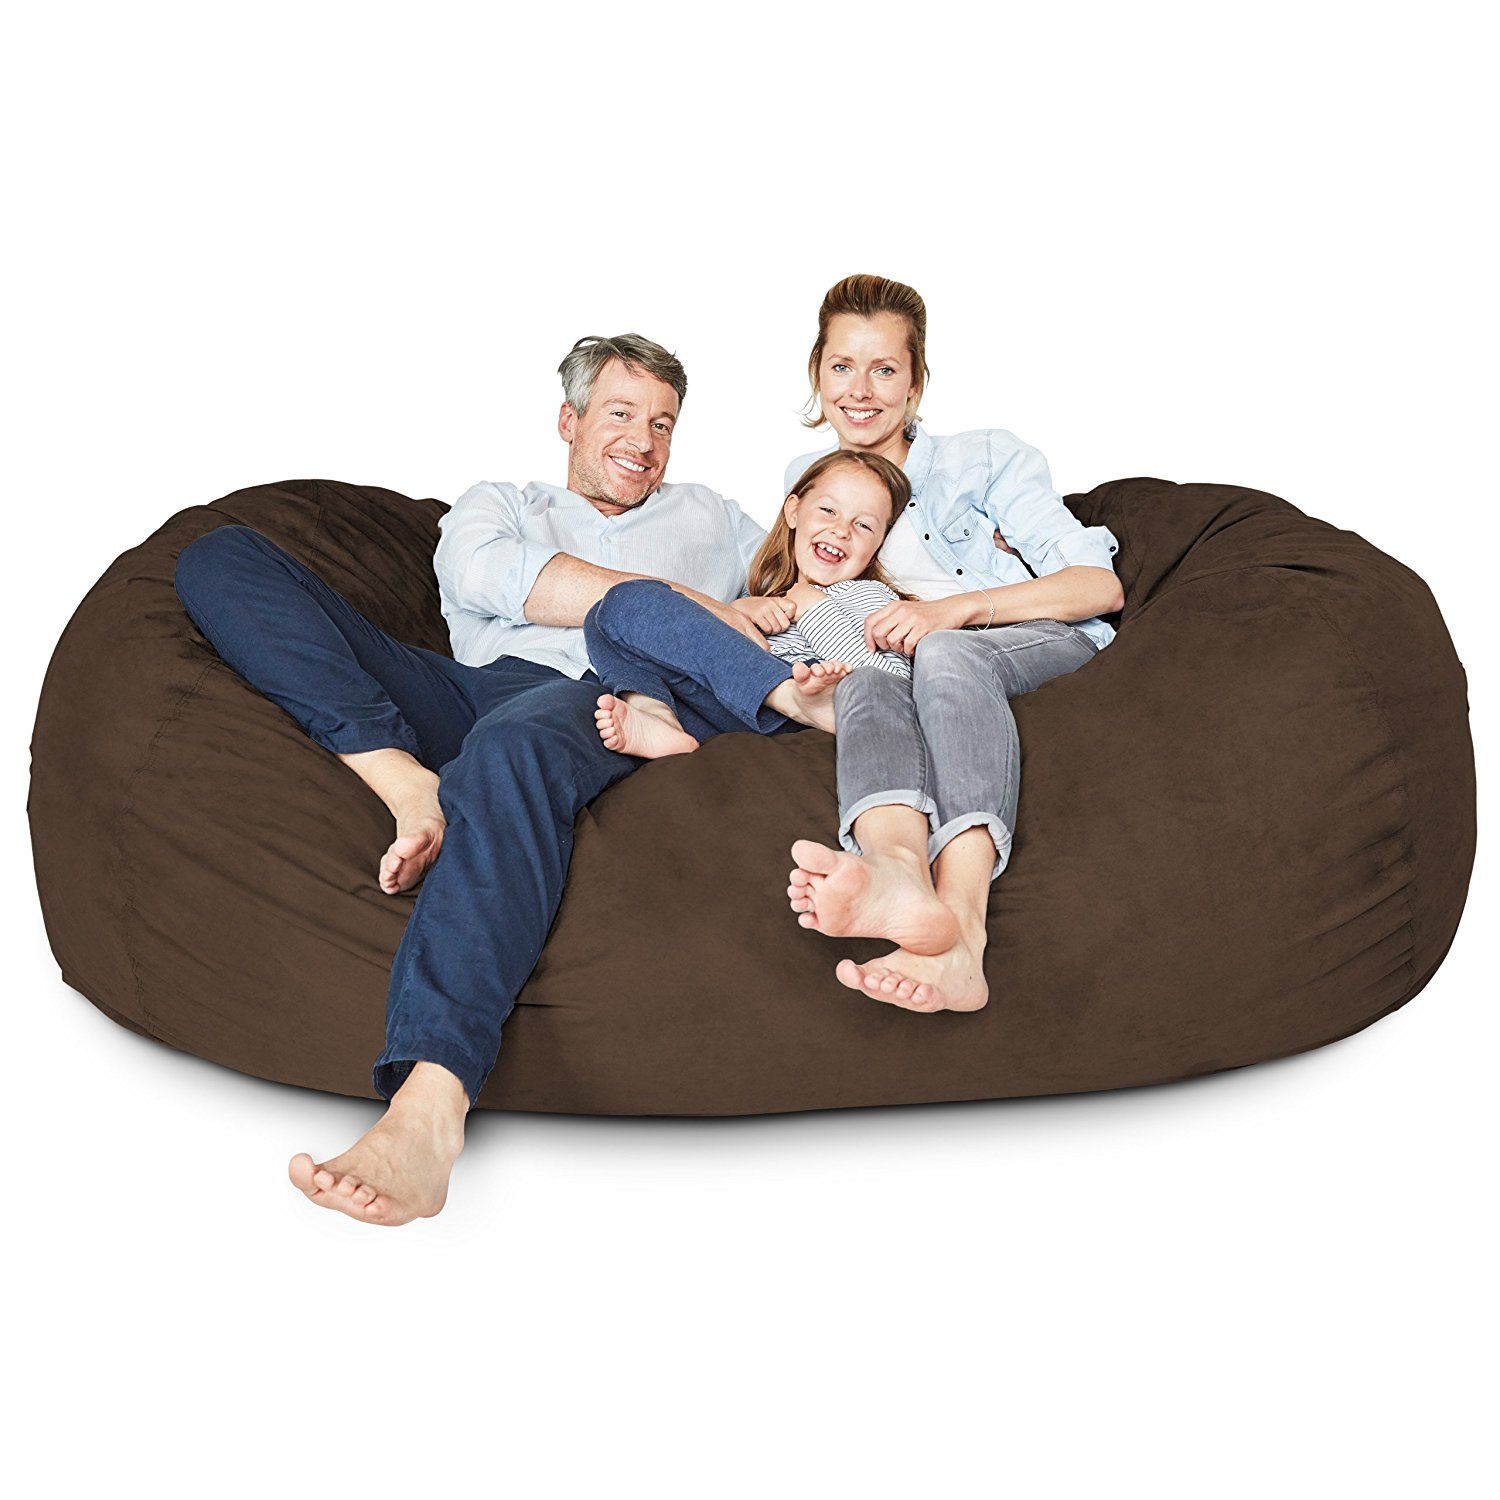 Lumaland Luxury 7 Foot Bean Bag Chair With Microsuede Cover Brown Machine Washable Big Size Sofa And Gian Bean Bag Chair Luxury Bean Bags Giant Bean Bag Chair